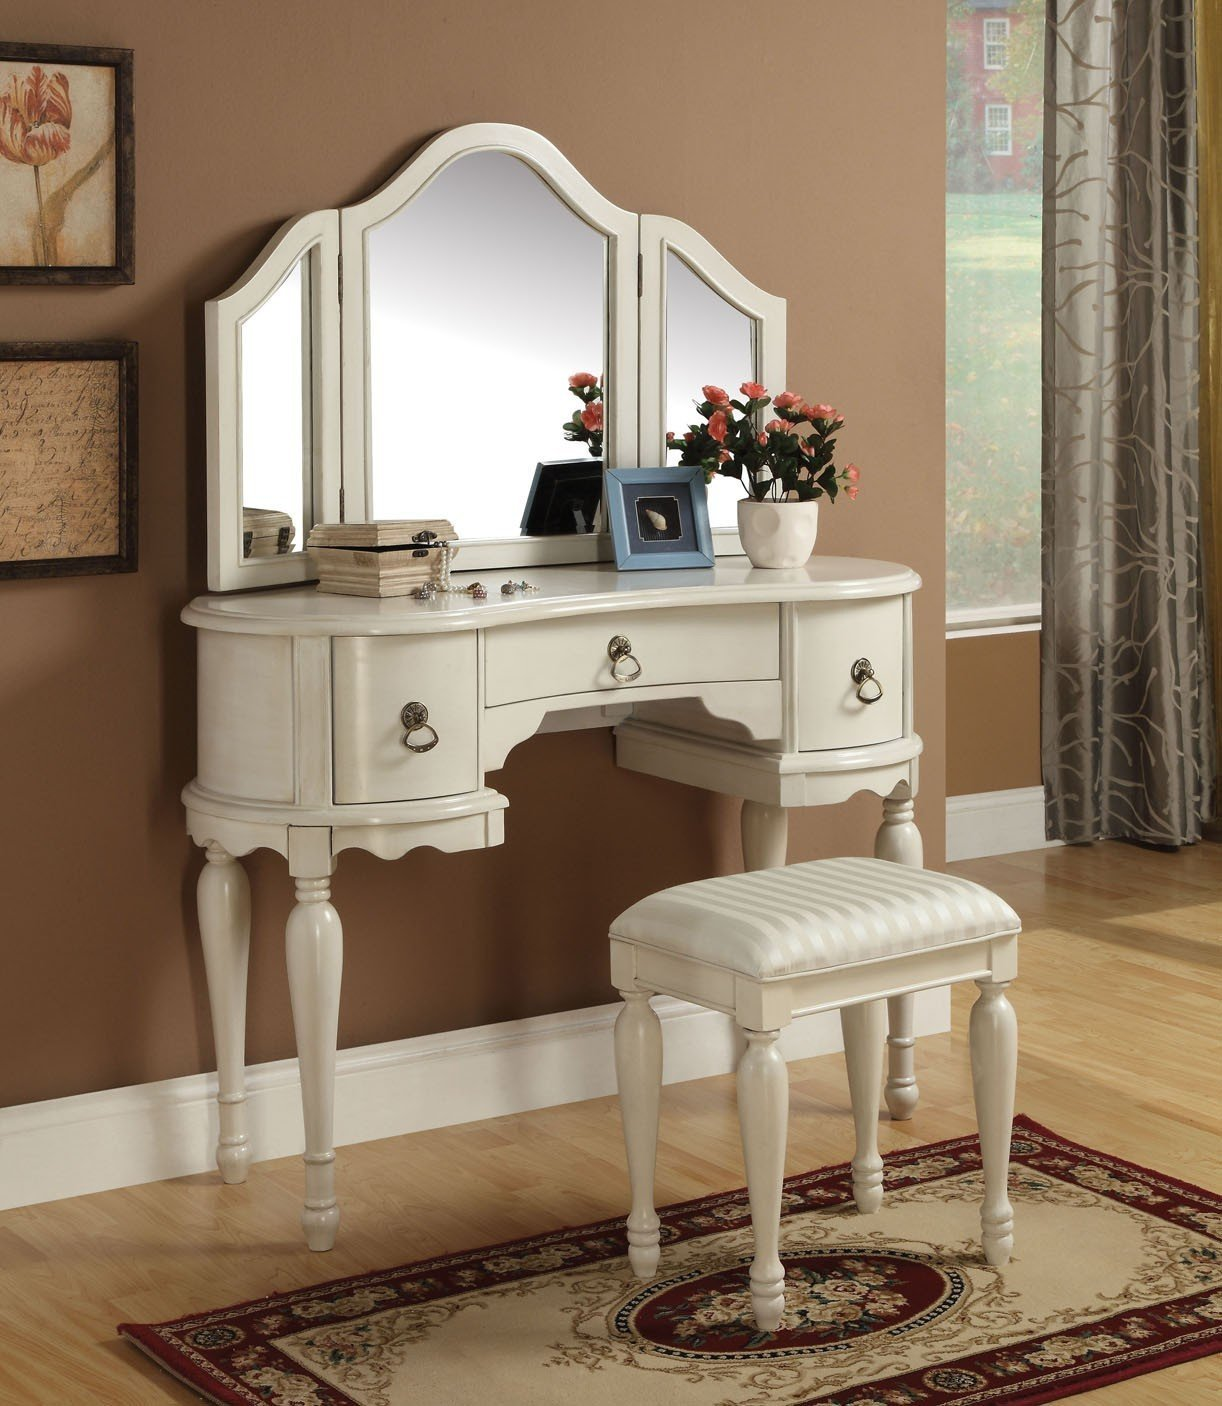 Blanche 3 Piece Vanity Set in Off-White Finish with Swing Tri-Fold Mirror - Vanity, Vanity Mirror & Bench